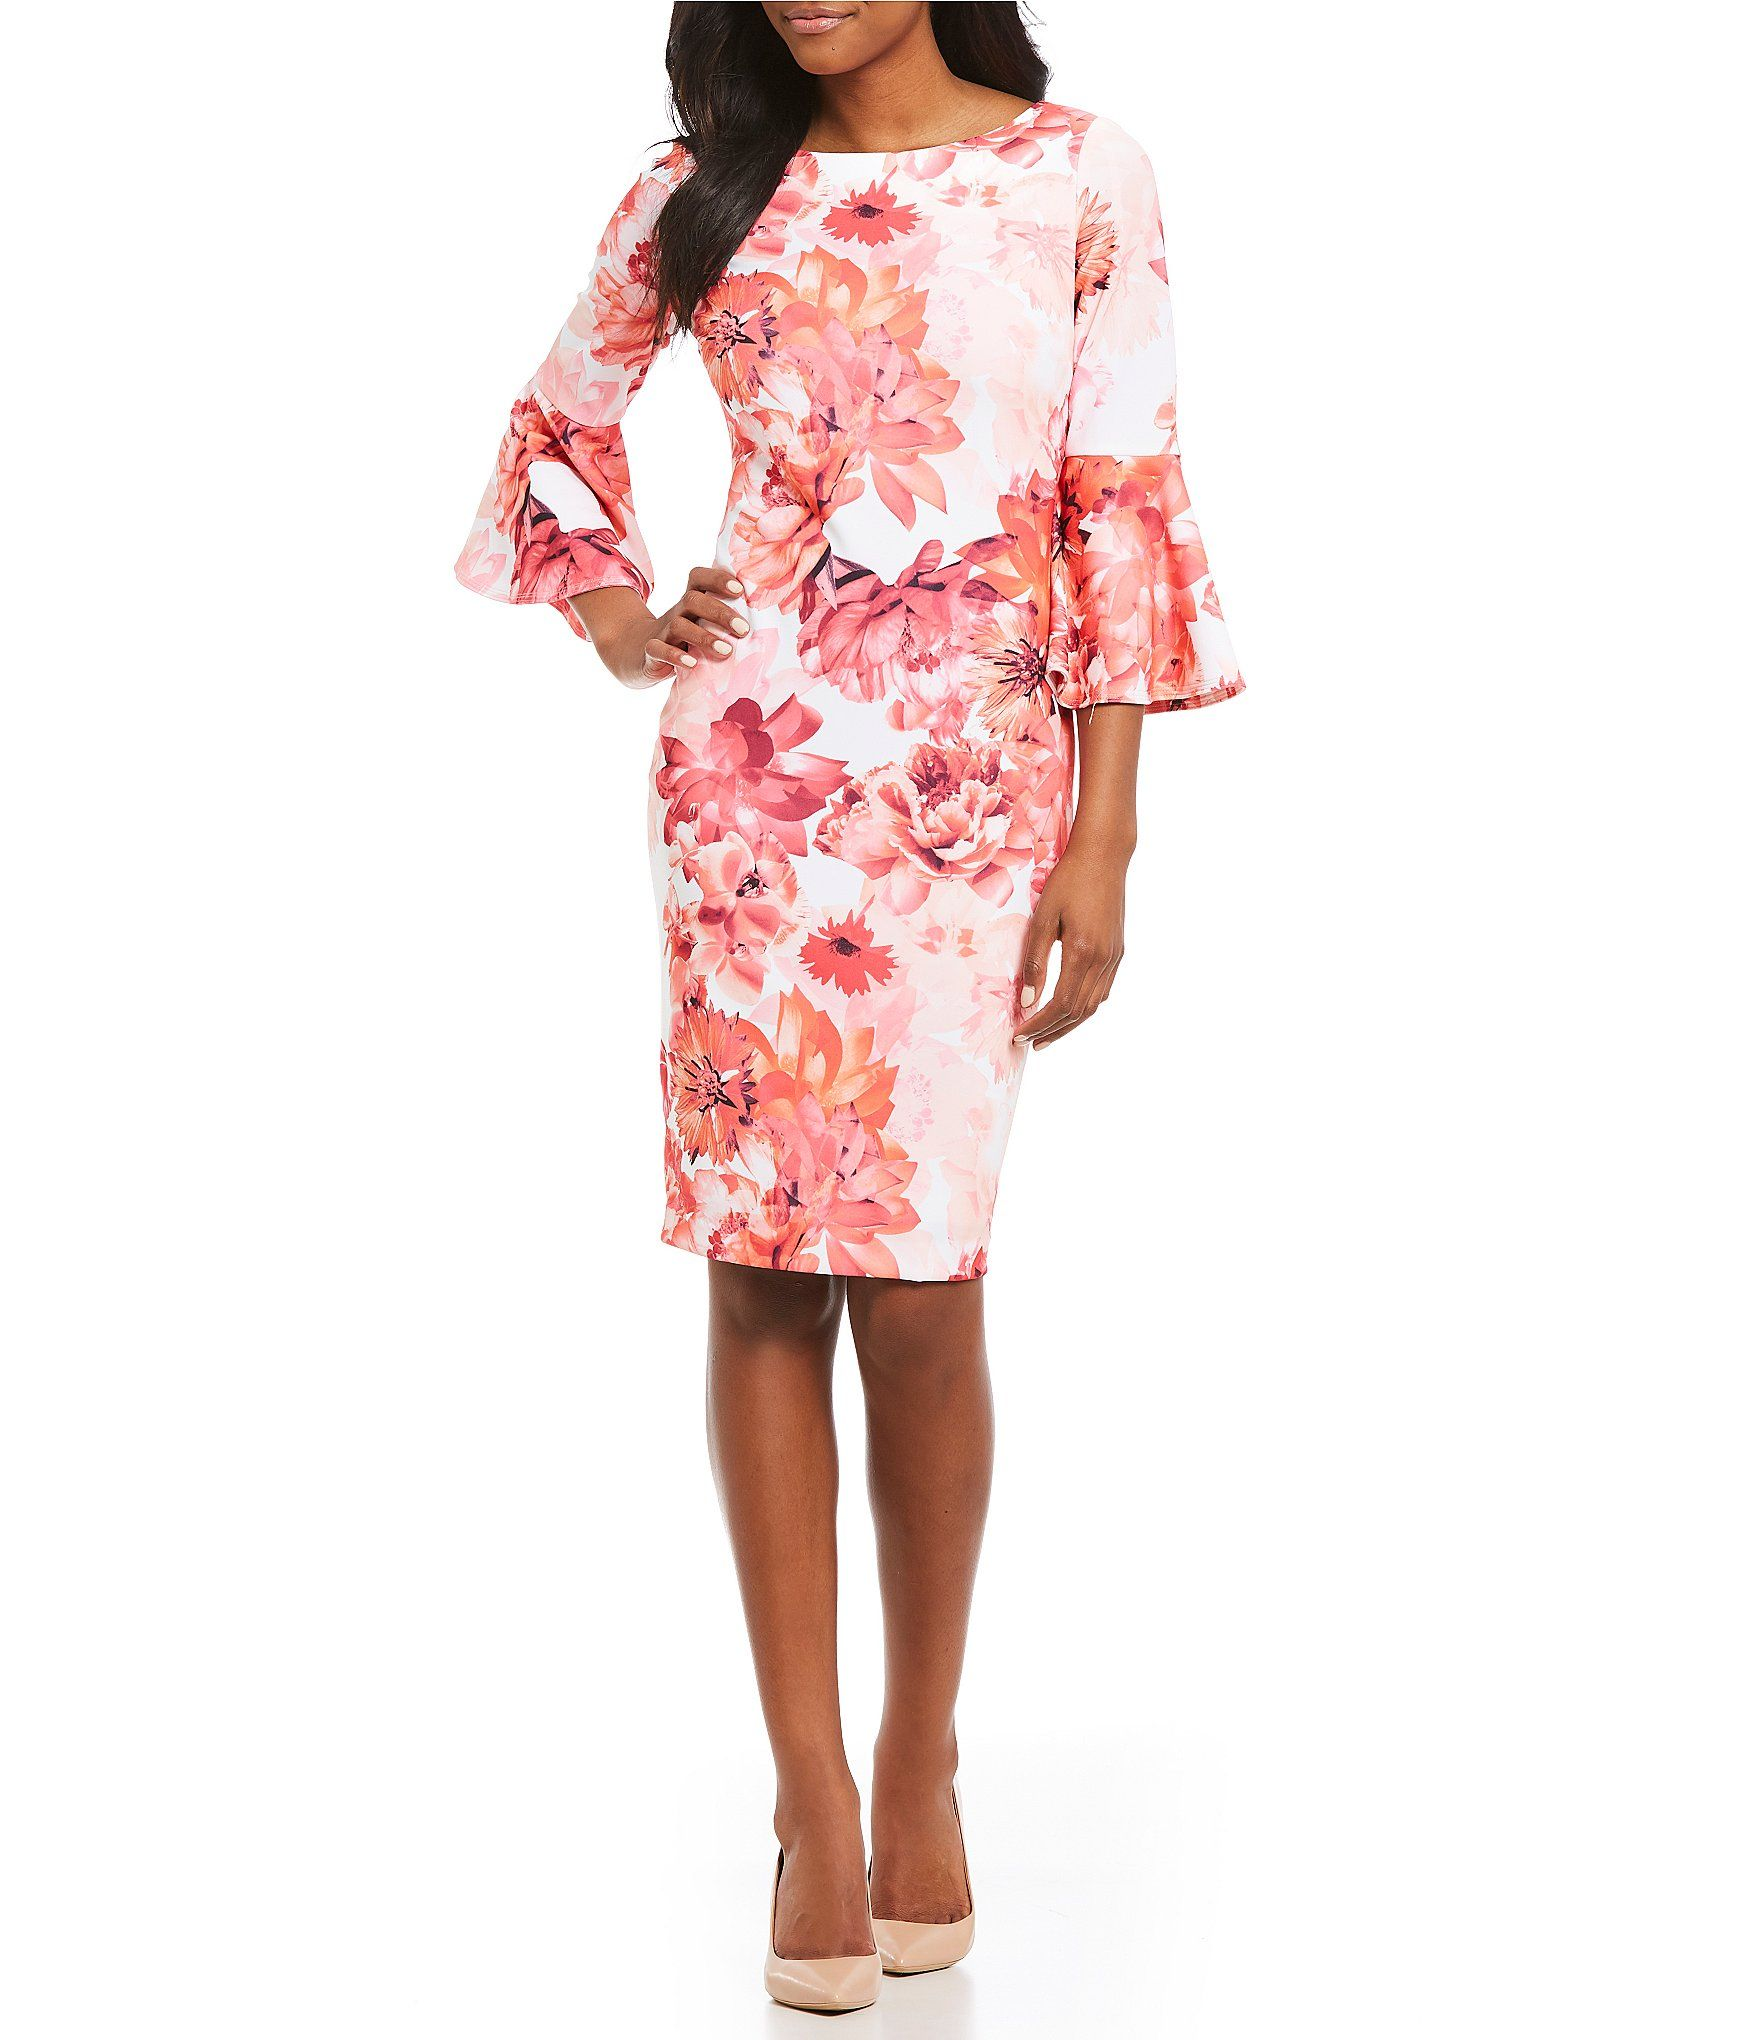 69c87adbd1 Shop for Calvin Klein Scuba Crepe Floral Print Bell Sleeve Sheath Dress at  Dillards.com. Visit Dillards.com to find clothing